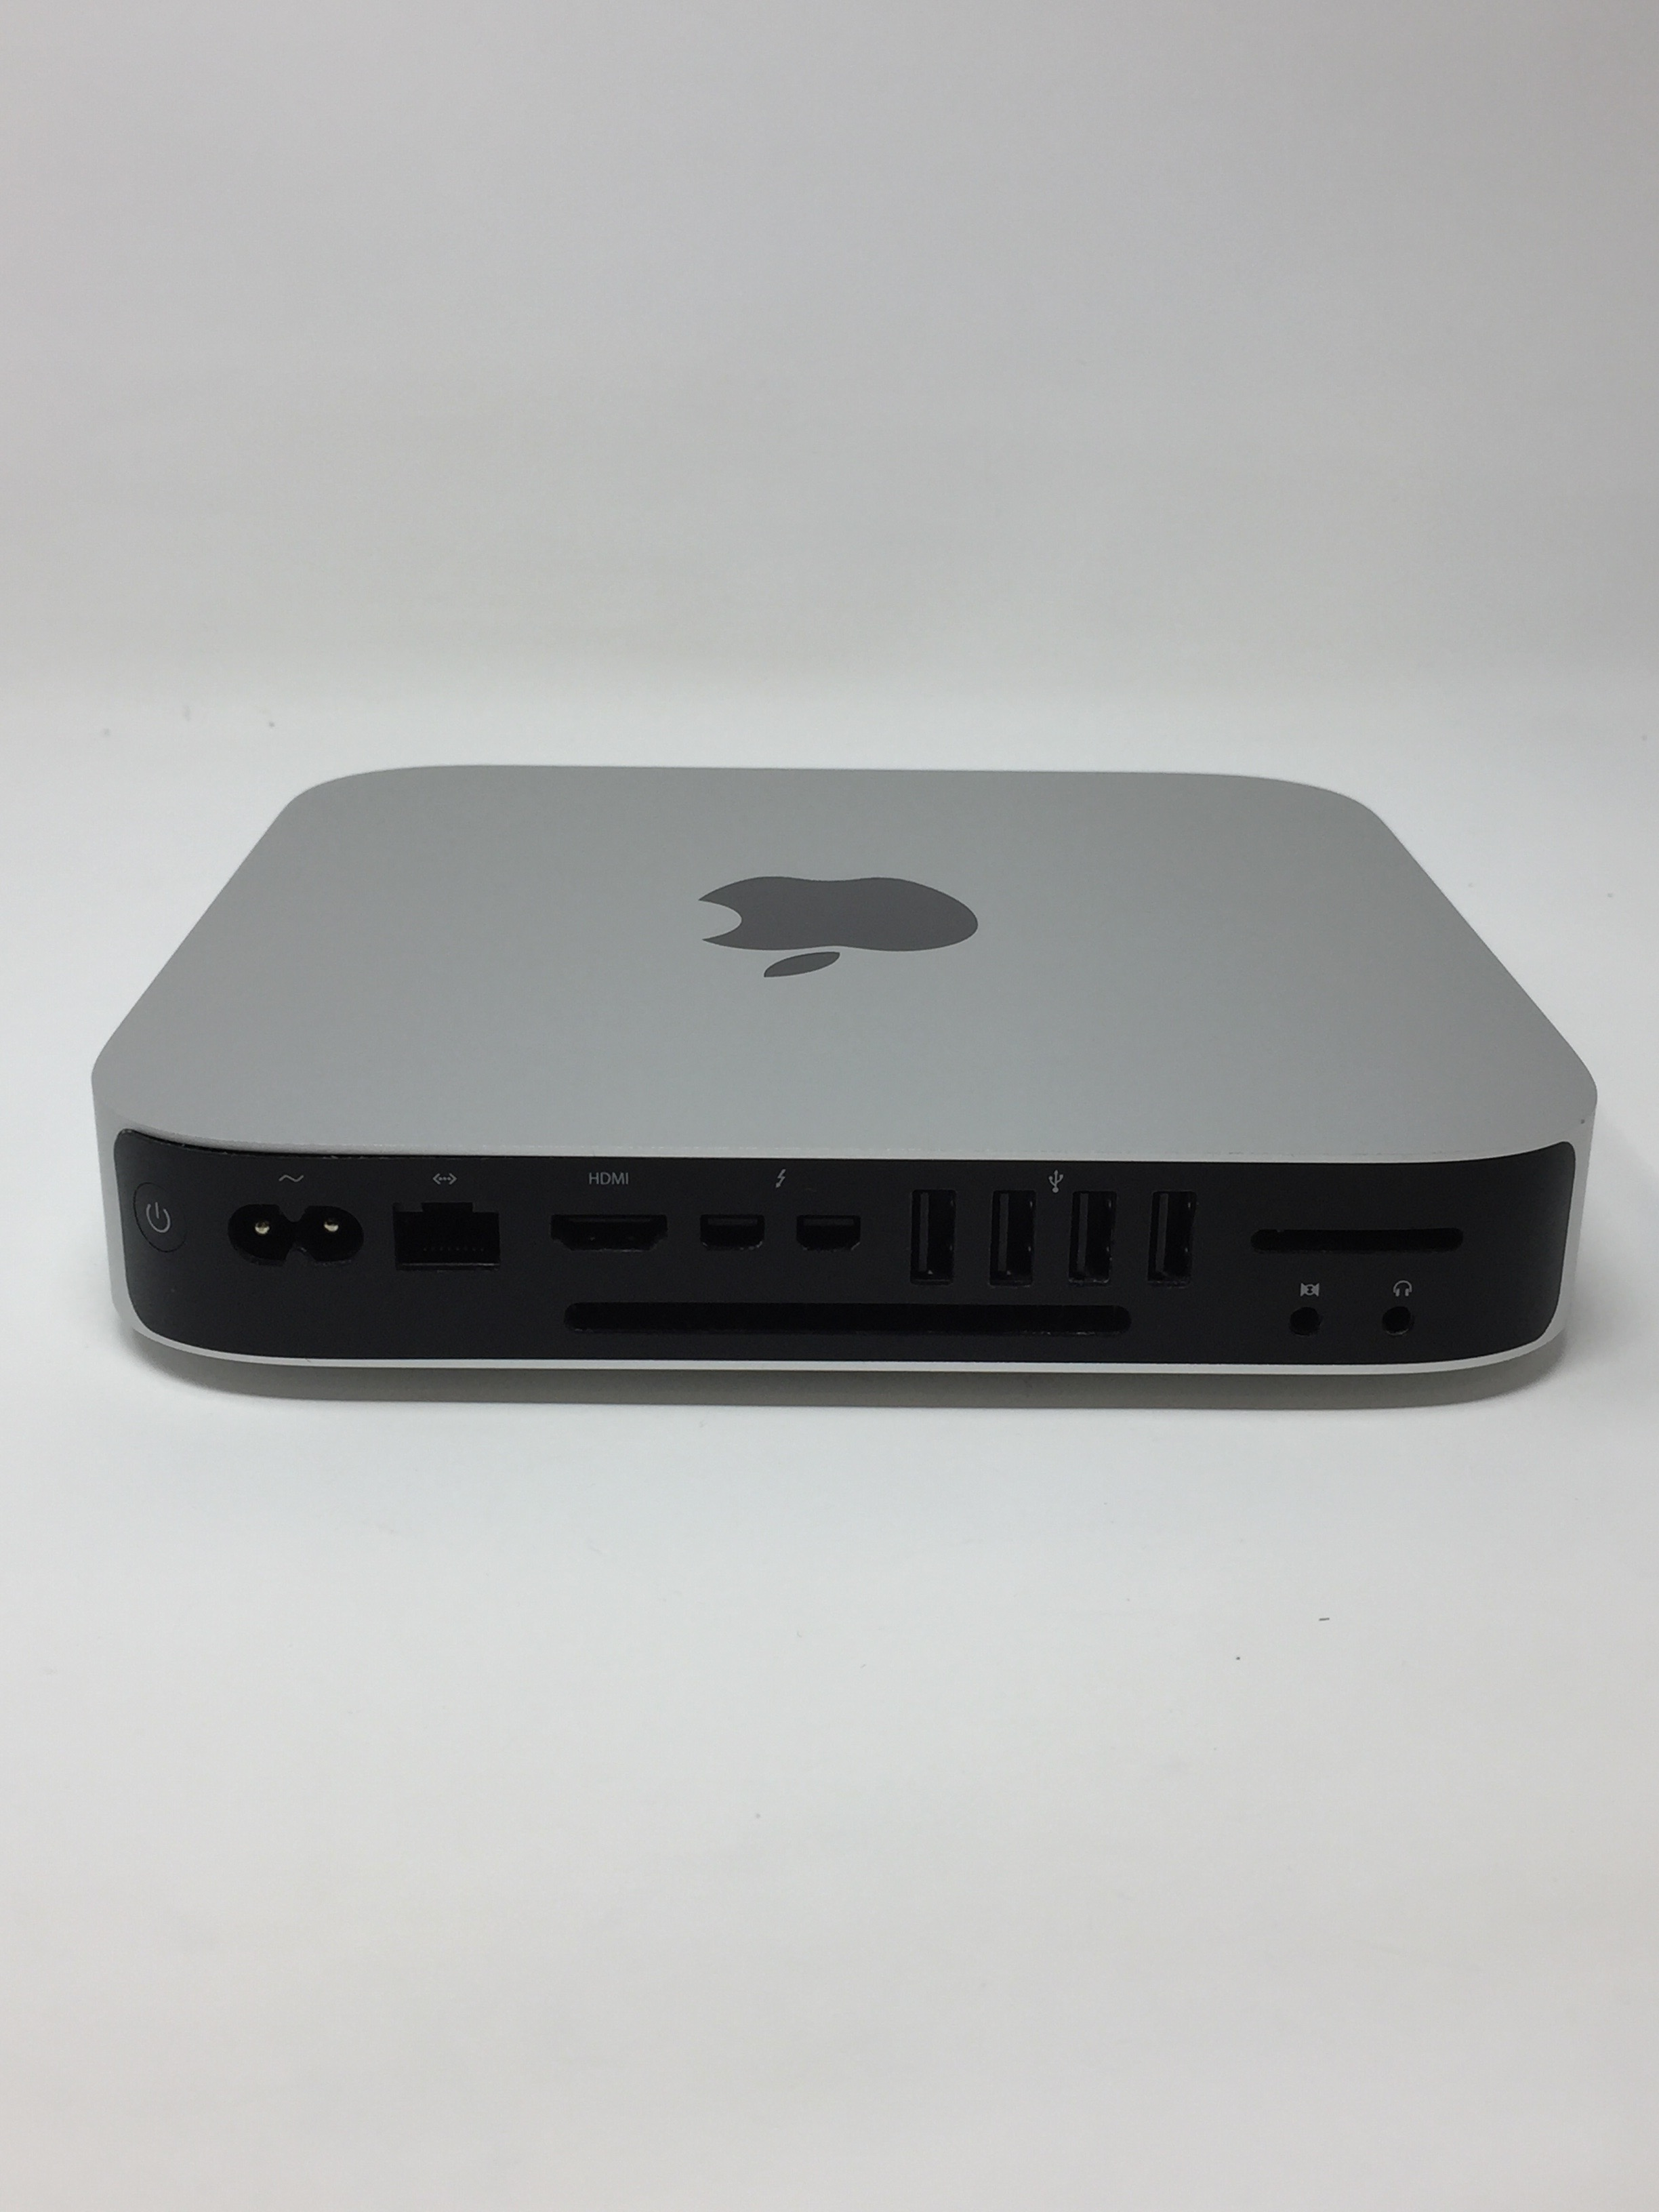 Mac Mini Late 2014 (Intel Core i5 2.8 GHz 8 GB RAM 512 GB SSD), 2.6GHZ INTEL CORE I5, 8 GB 1600 MHz DDR3, SSD 525GB, imagen 2